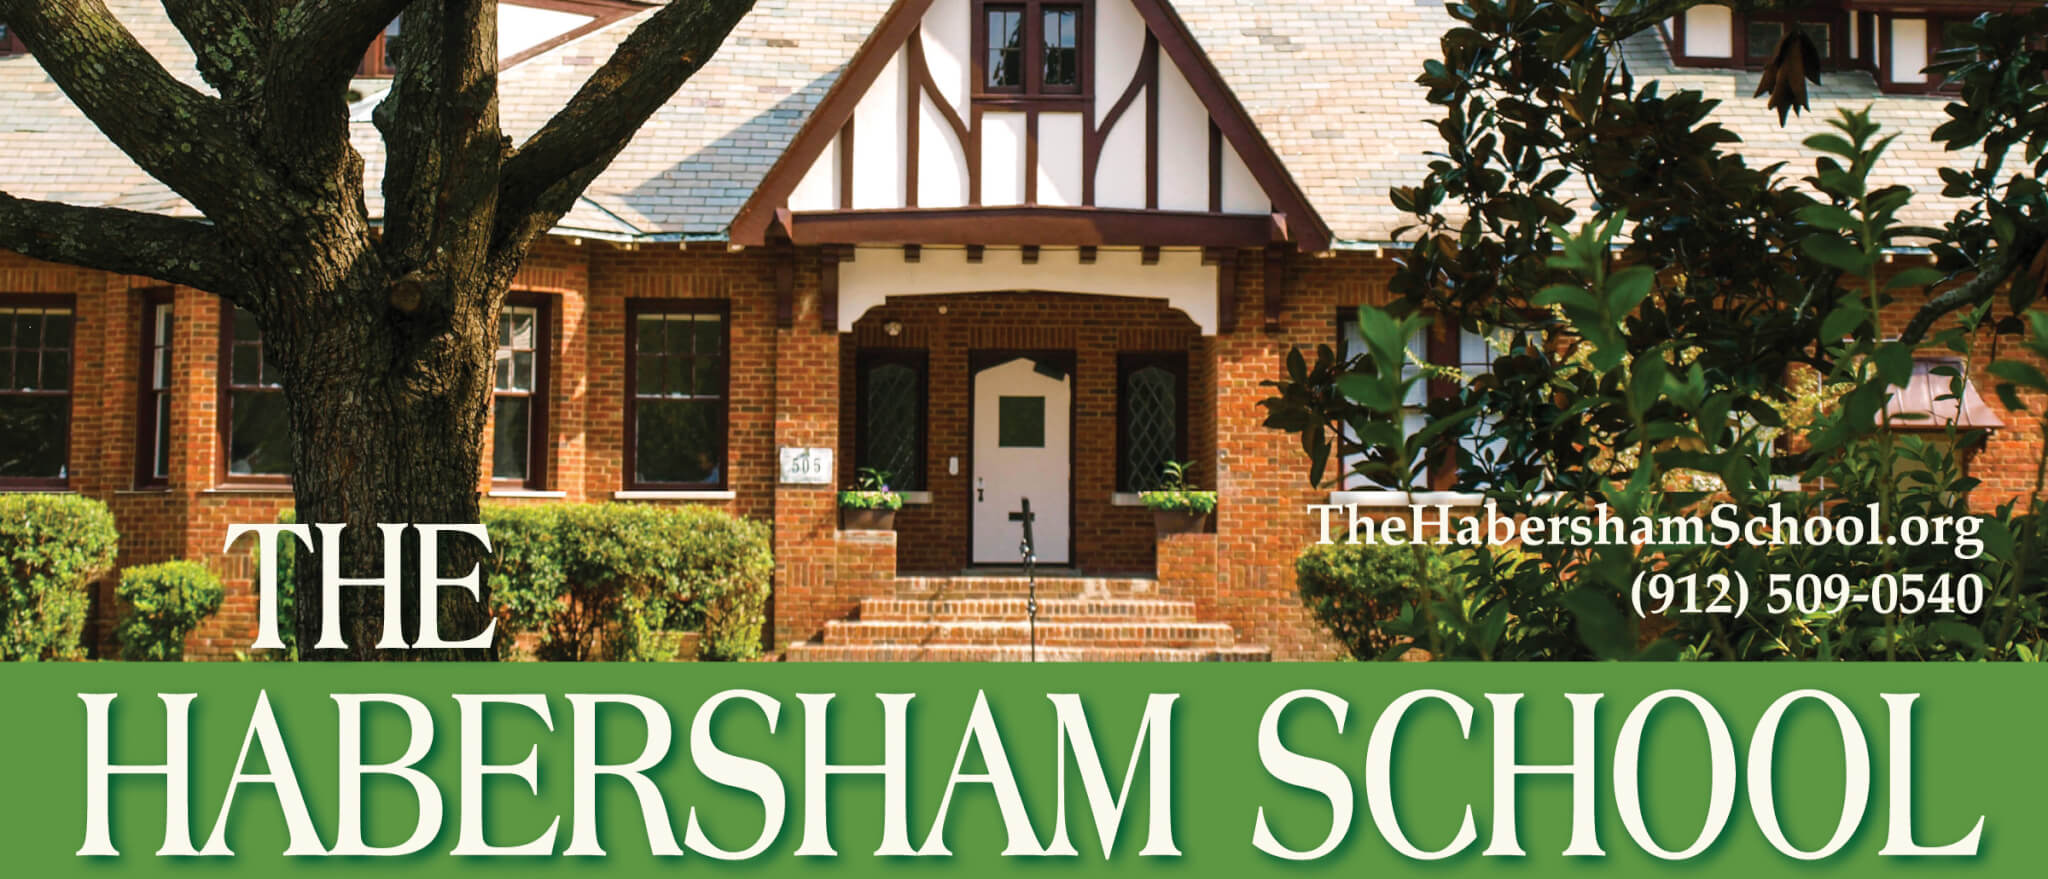 Habersham School